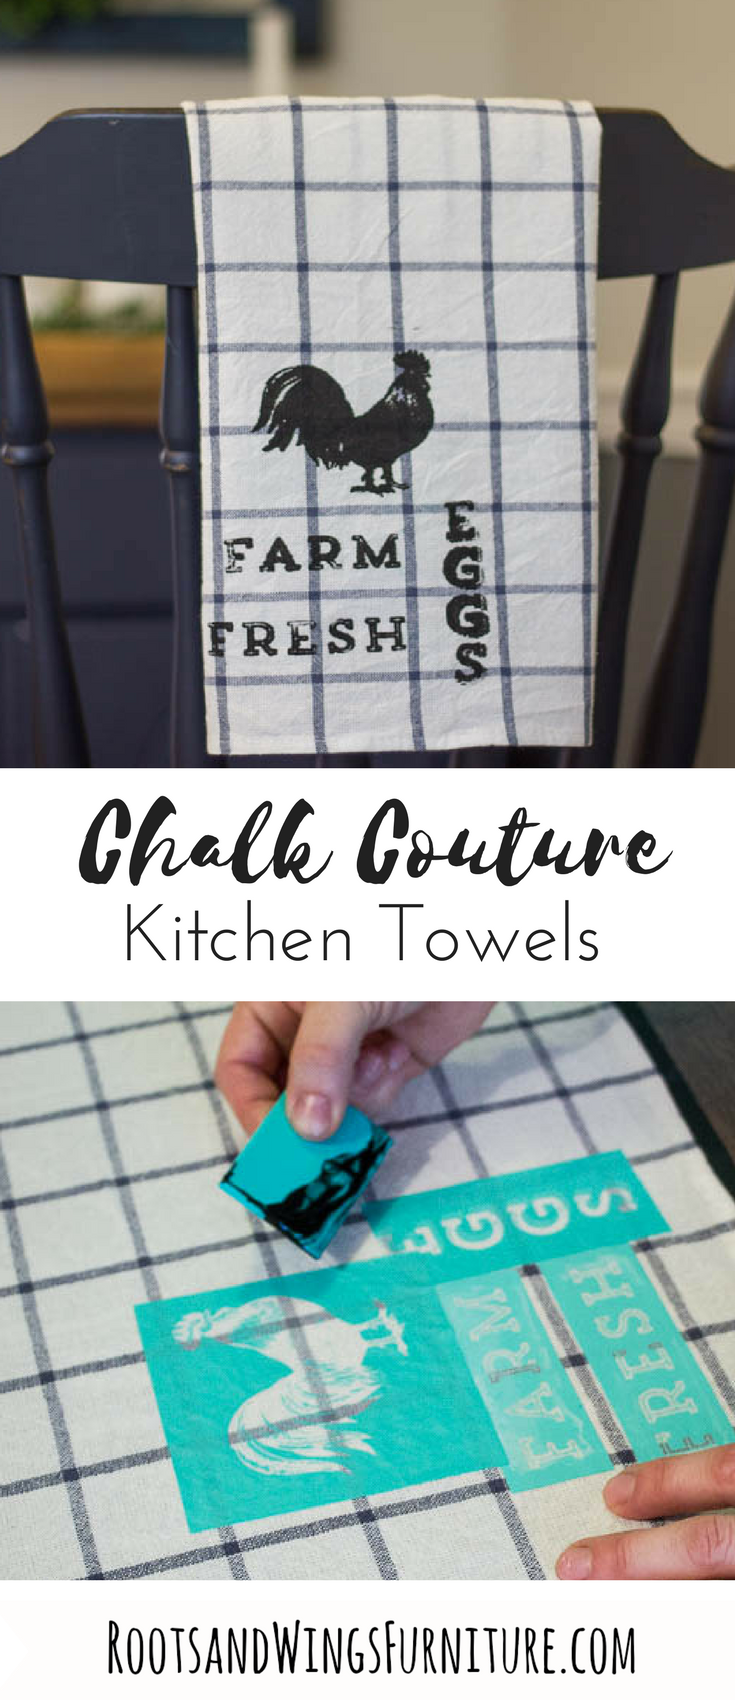 Diy Farmhouse Kitchen Towels Handmade Home Decor Handmade Home